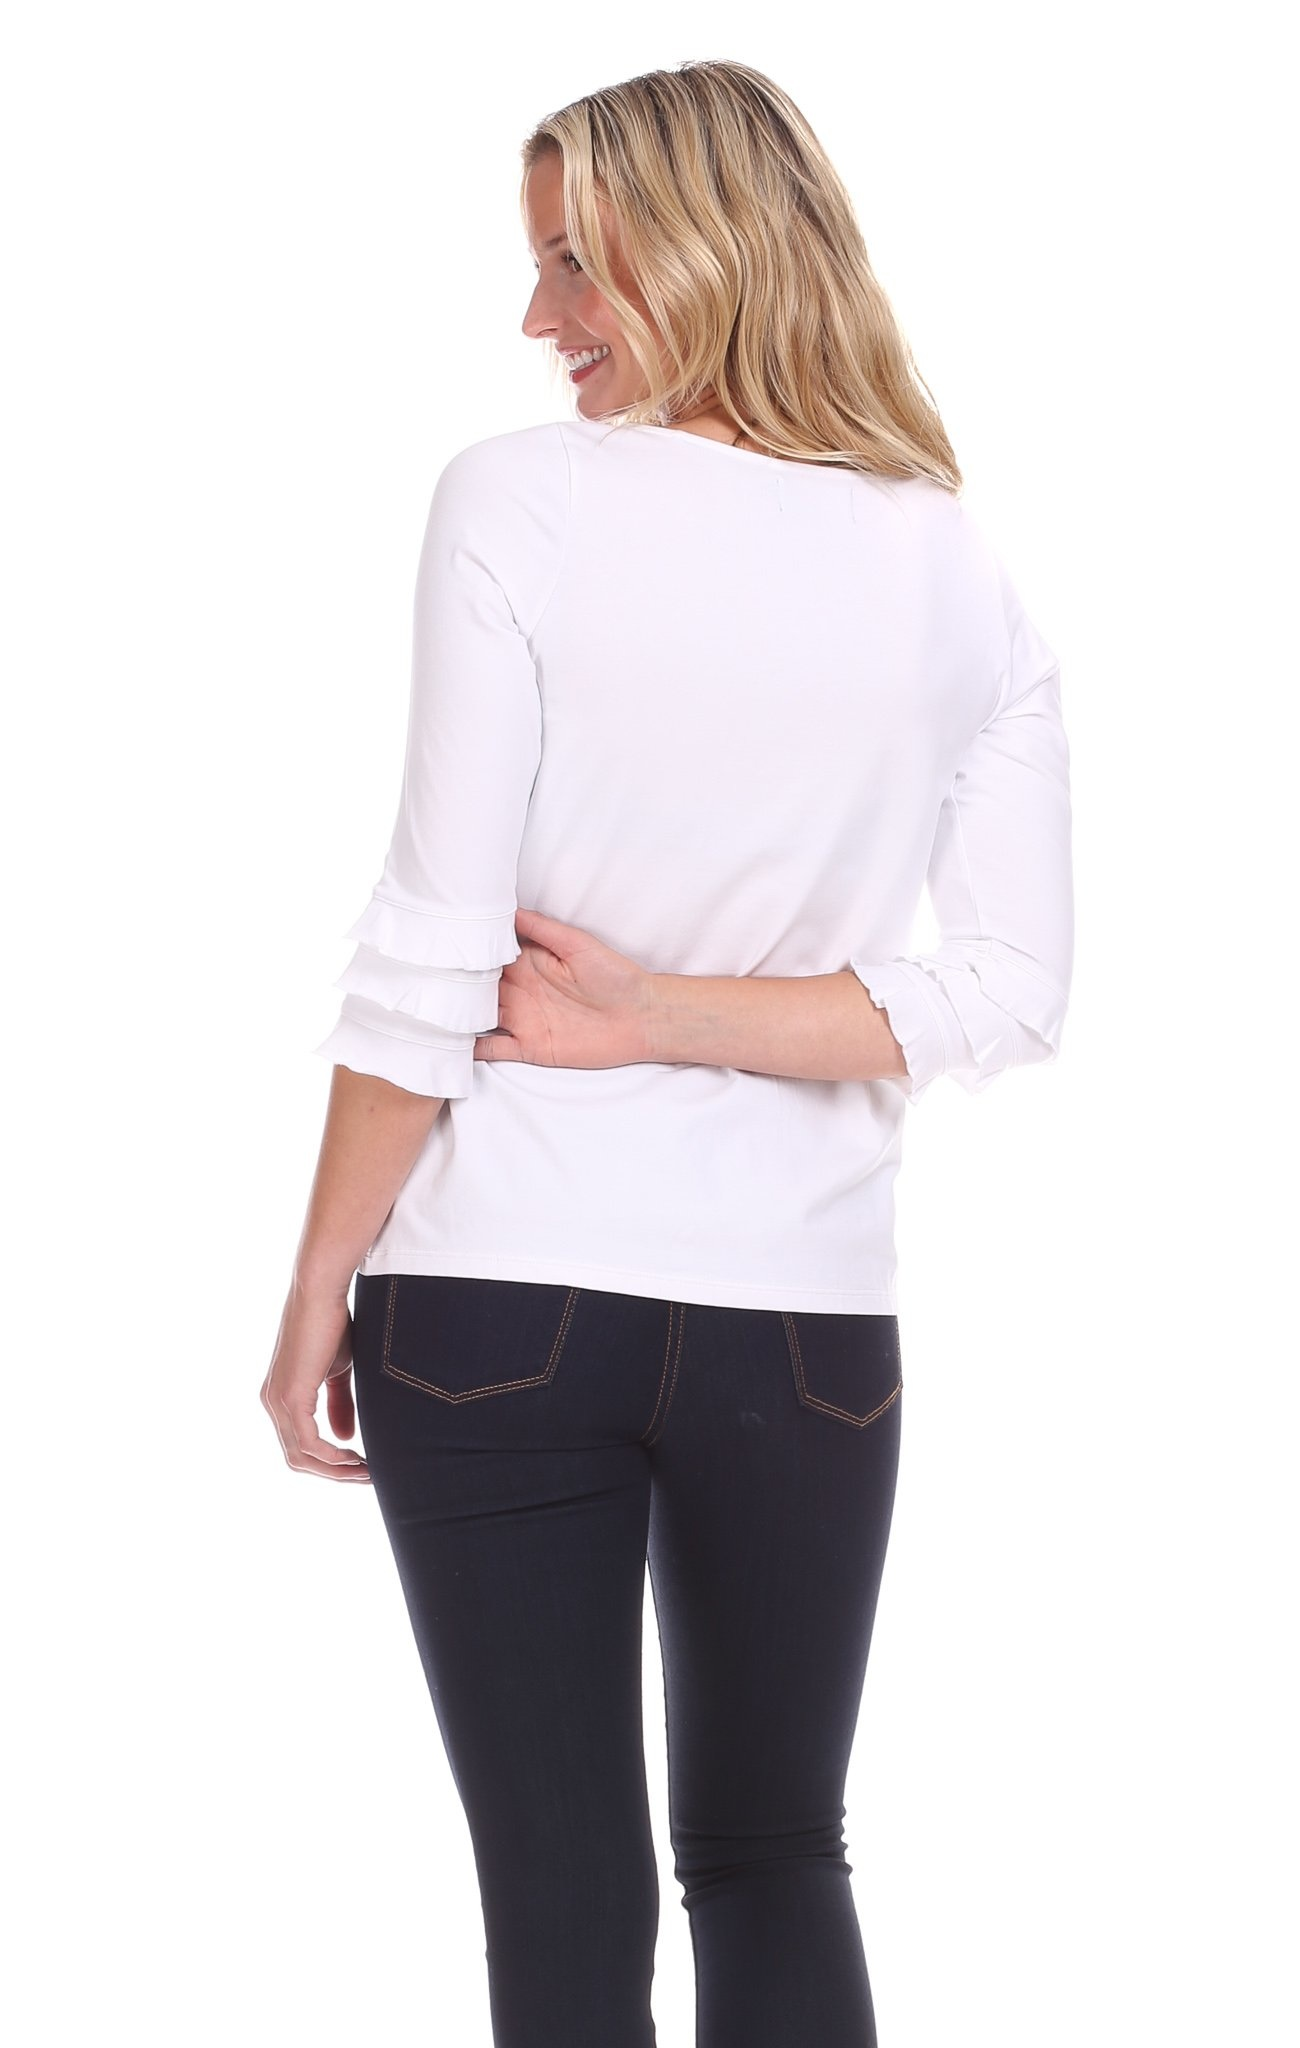 DUFFIELD LANE Claire Top